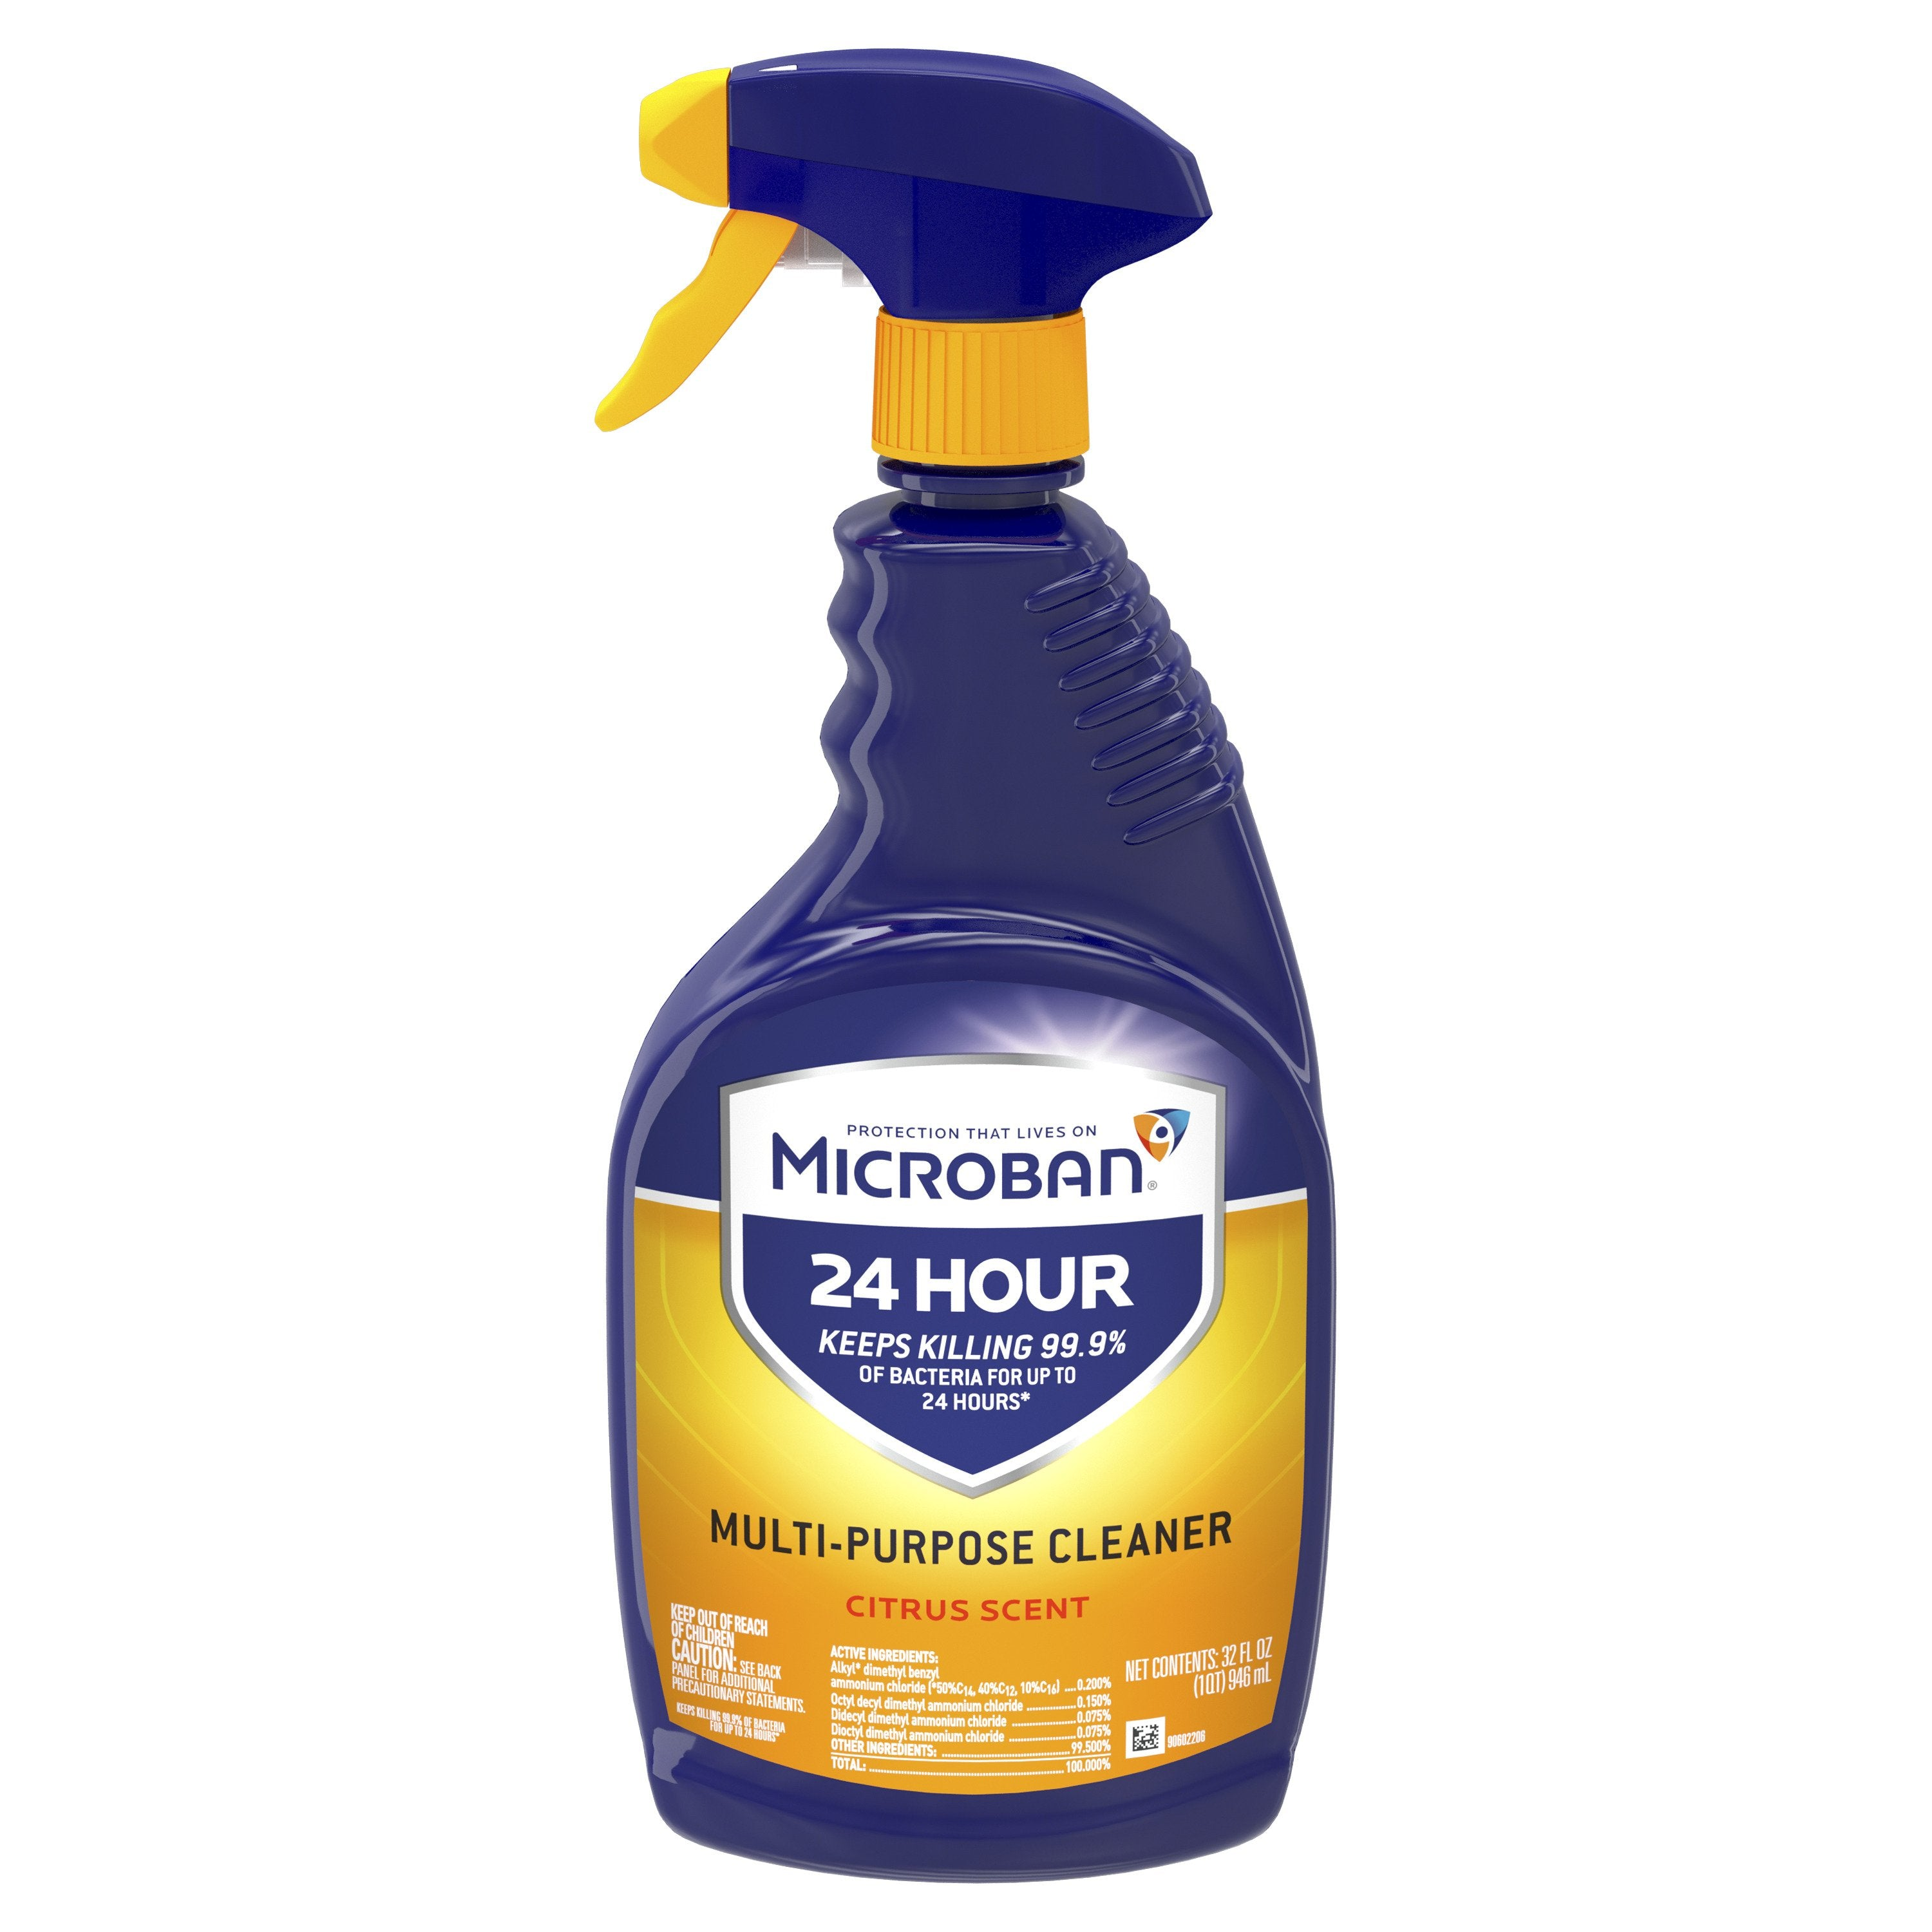 Microban Sanitizing Spray - kills 99.9% of germs, including cold and flu viruses - Brooklyn Equipment